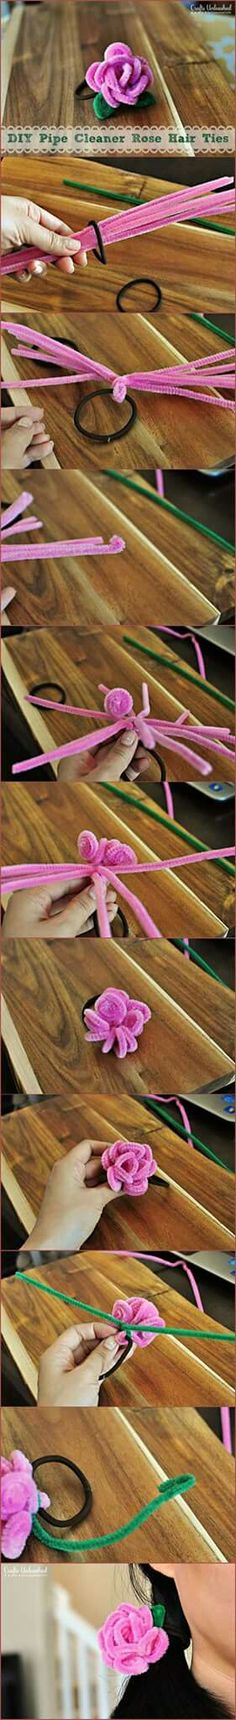 Discover thousands of images about DIY Pipe Cleaner Rose Hair Ties by beryl Cute Crafts, Crafts To Do, Crafts For Kids, Arts And Crafts, Diy Crafts, Flower Crafts, Diy Flowers, Fabric Flowers, Pipe Cleaner Art